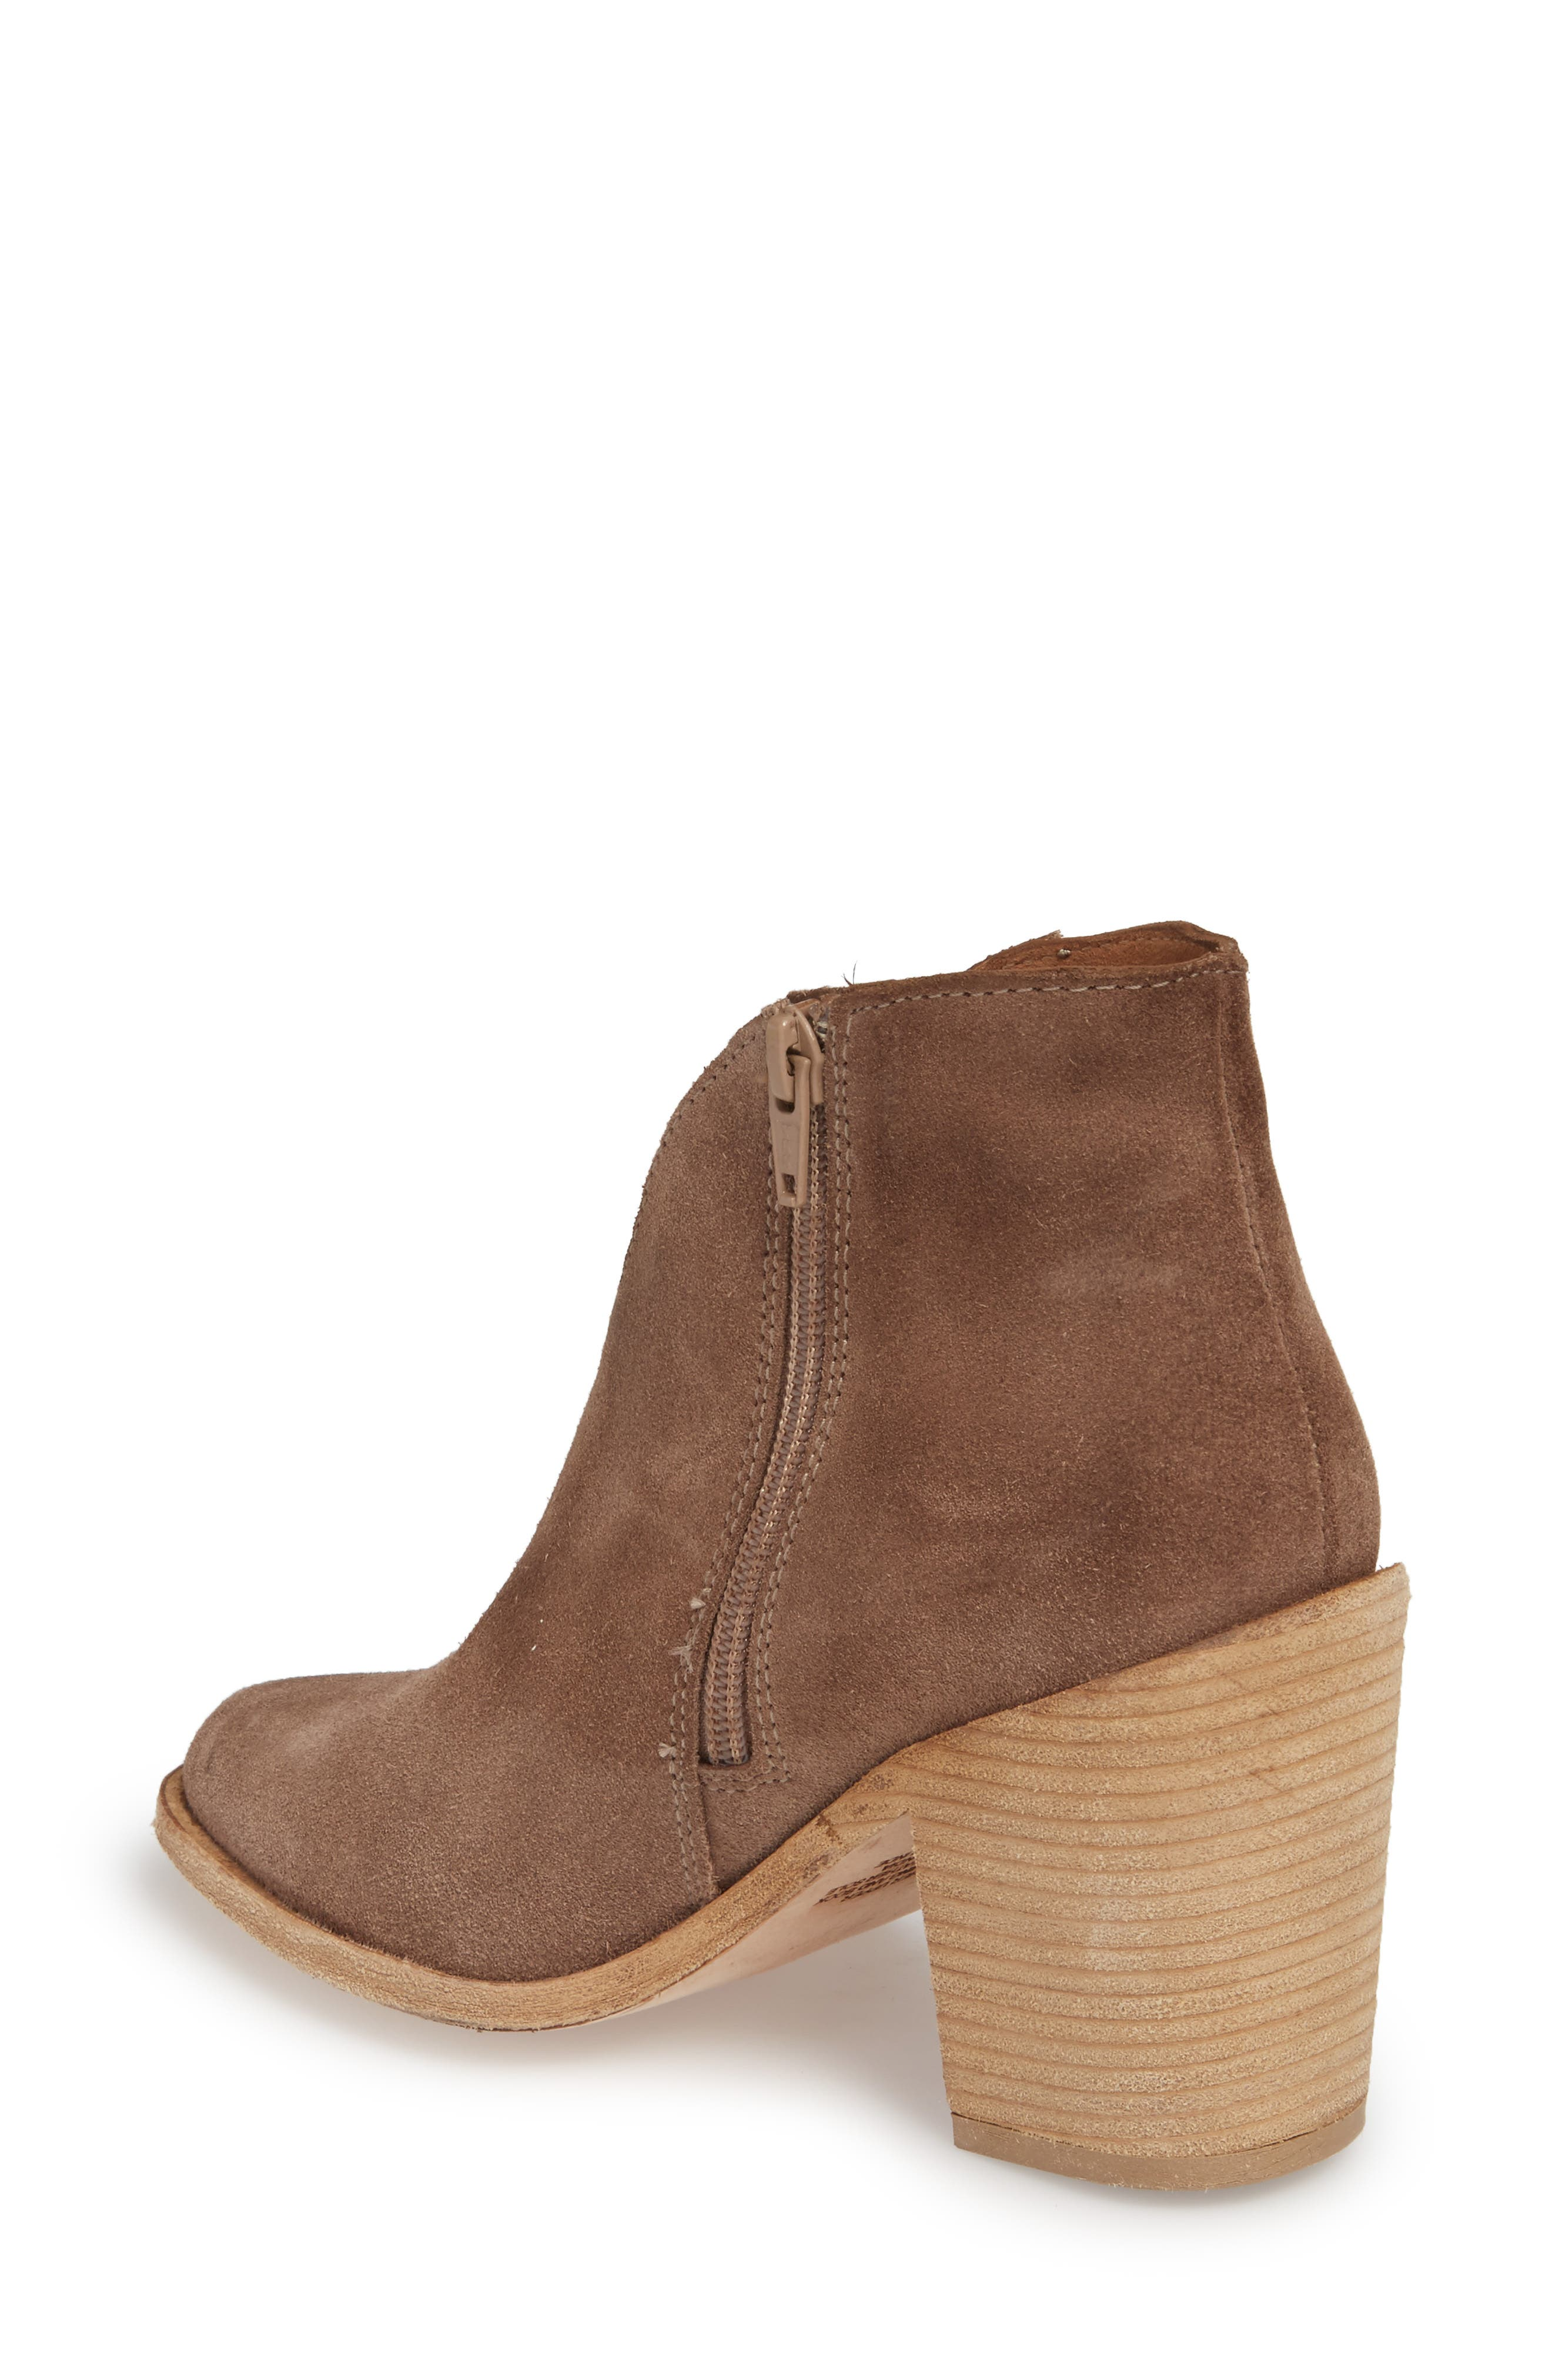 Kamet Bootie,                             Alternate thumbnail 2, color,                             Taupe Oiled Suede